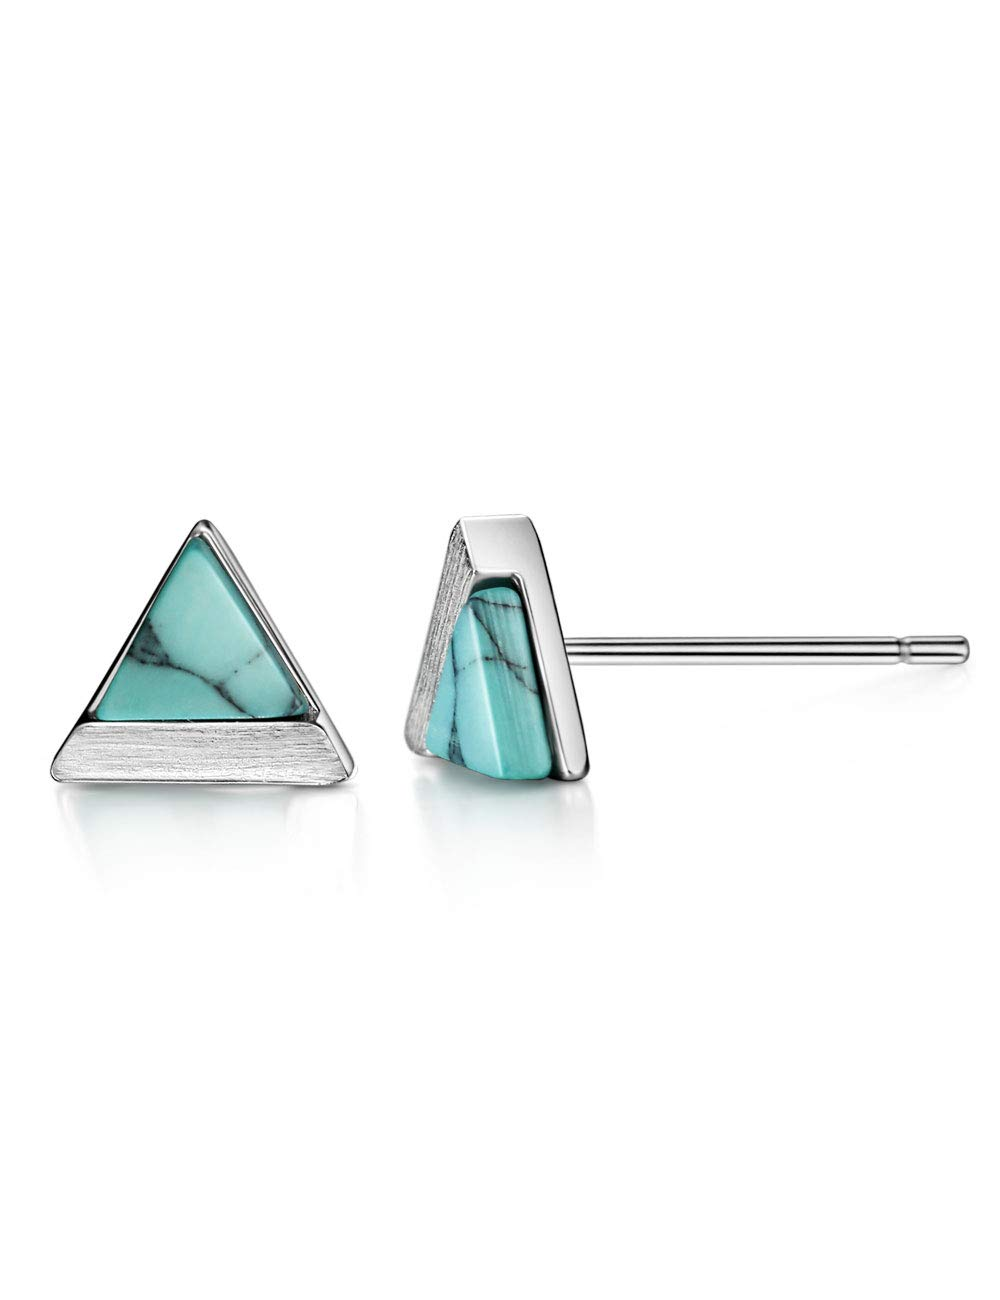 Turquoise Stud Earrings Sterling Silver Triangle Cut Brushed Finish Fine Jewelry for Women by Mints